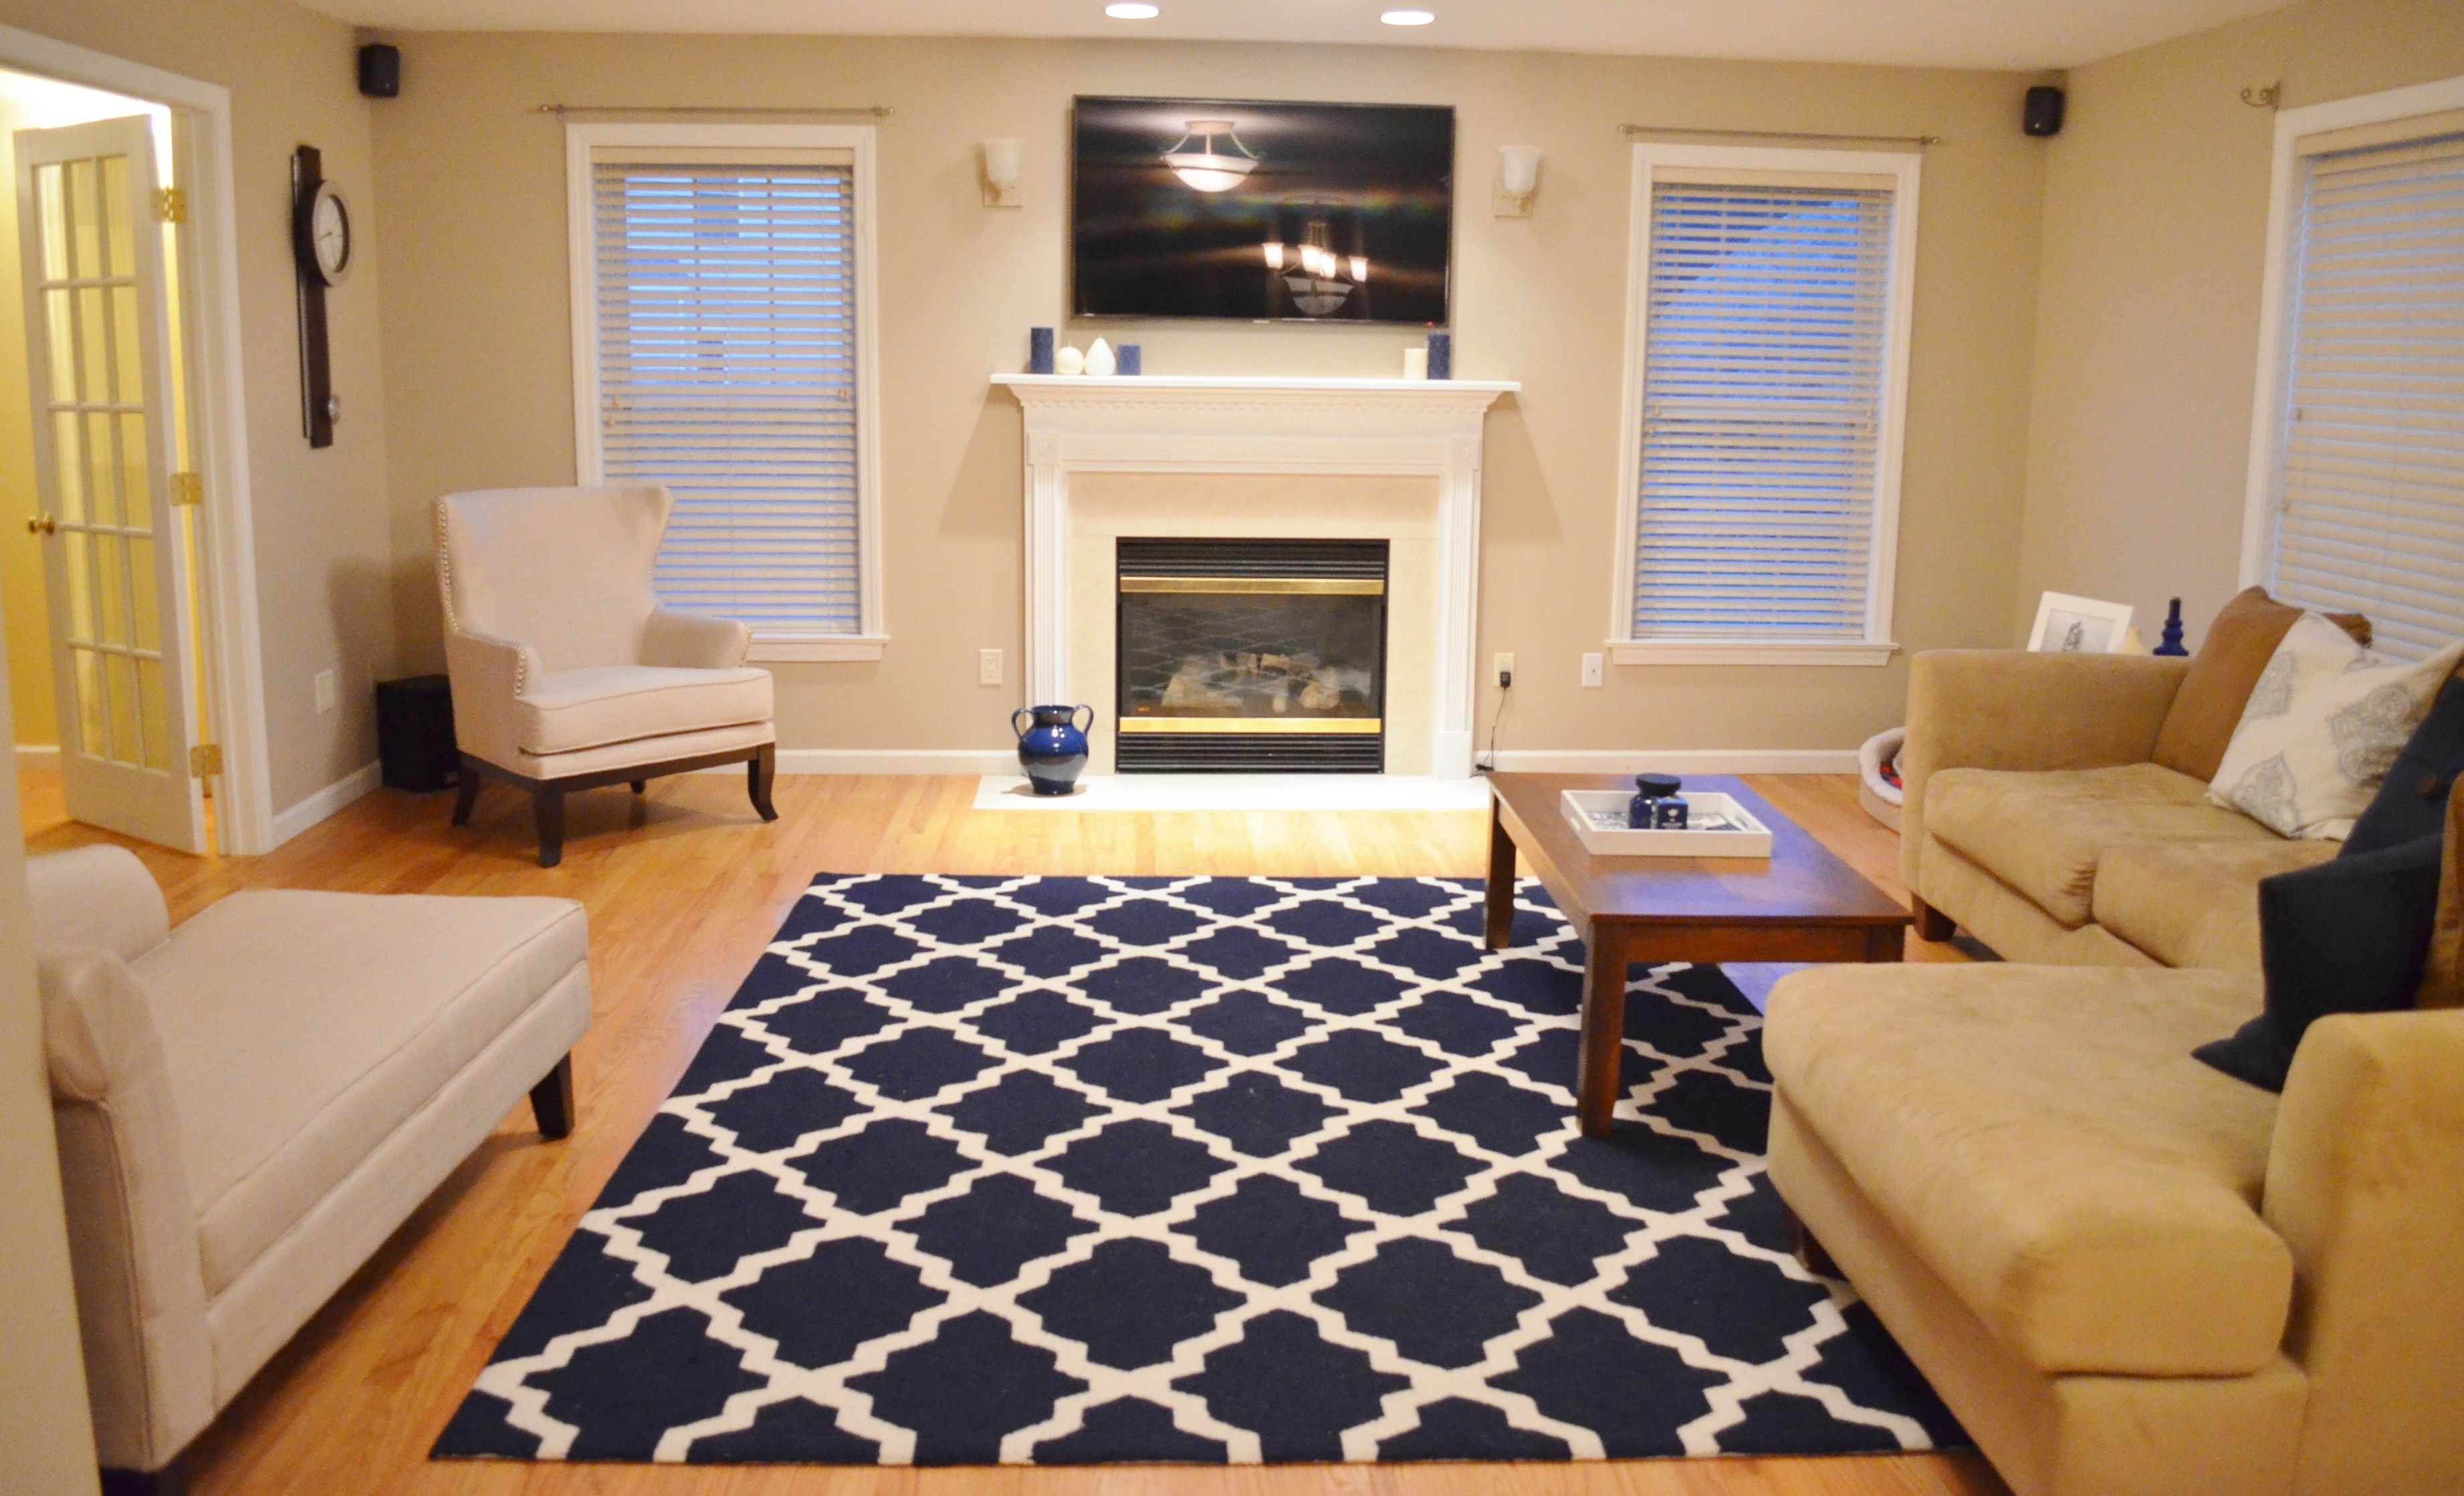 Featuring Rugs USA Navy Blue Moroccan Trellis Area Rug